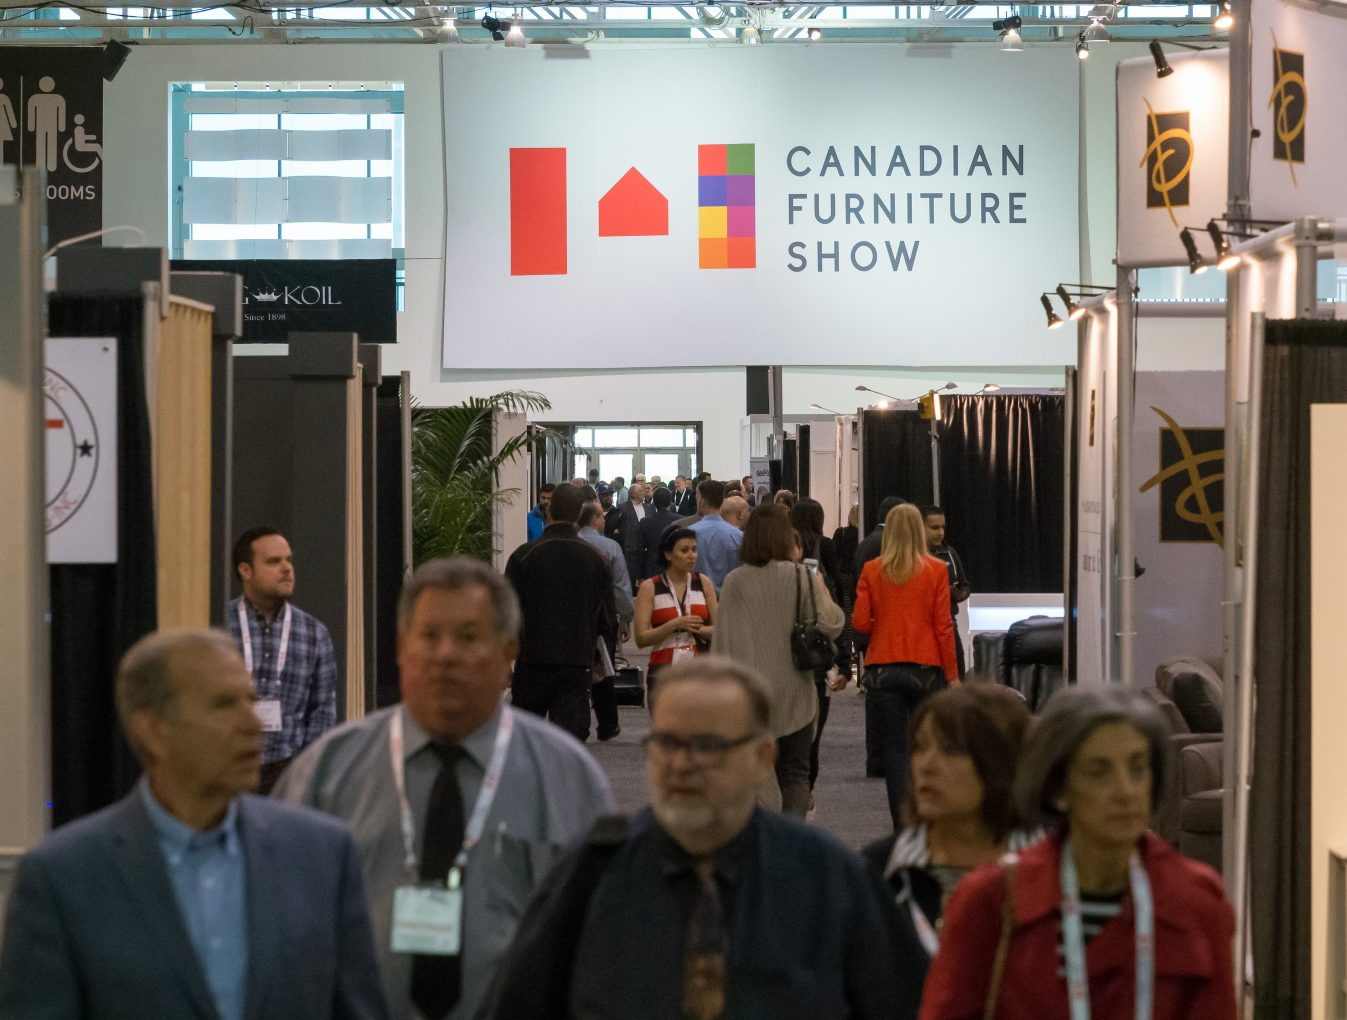 canadian furniture show 2019 CANADIAN FURNITURE SHOW 2019 EVENT GUIDE canadian show